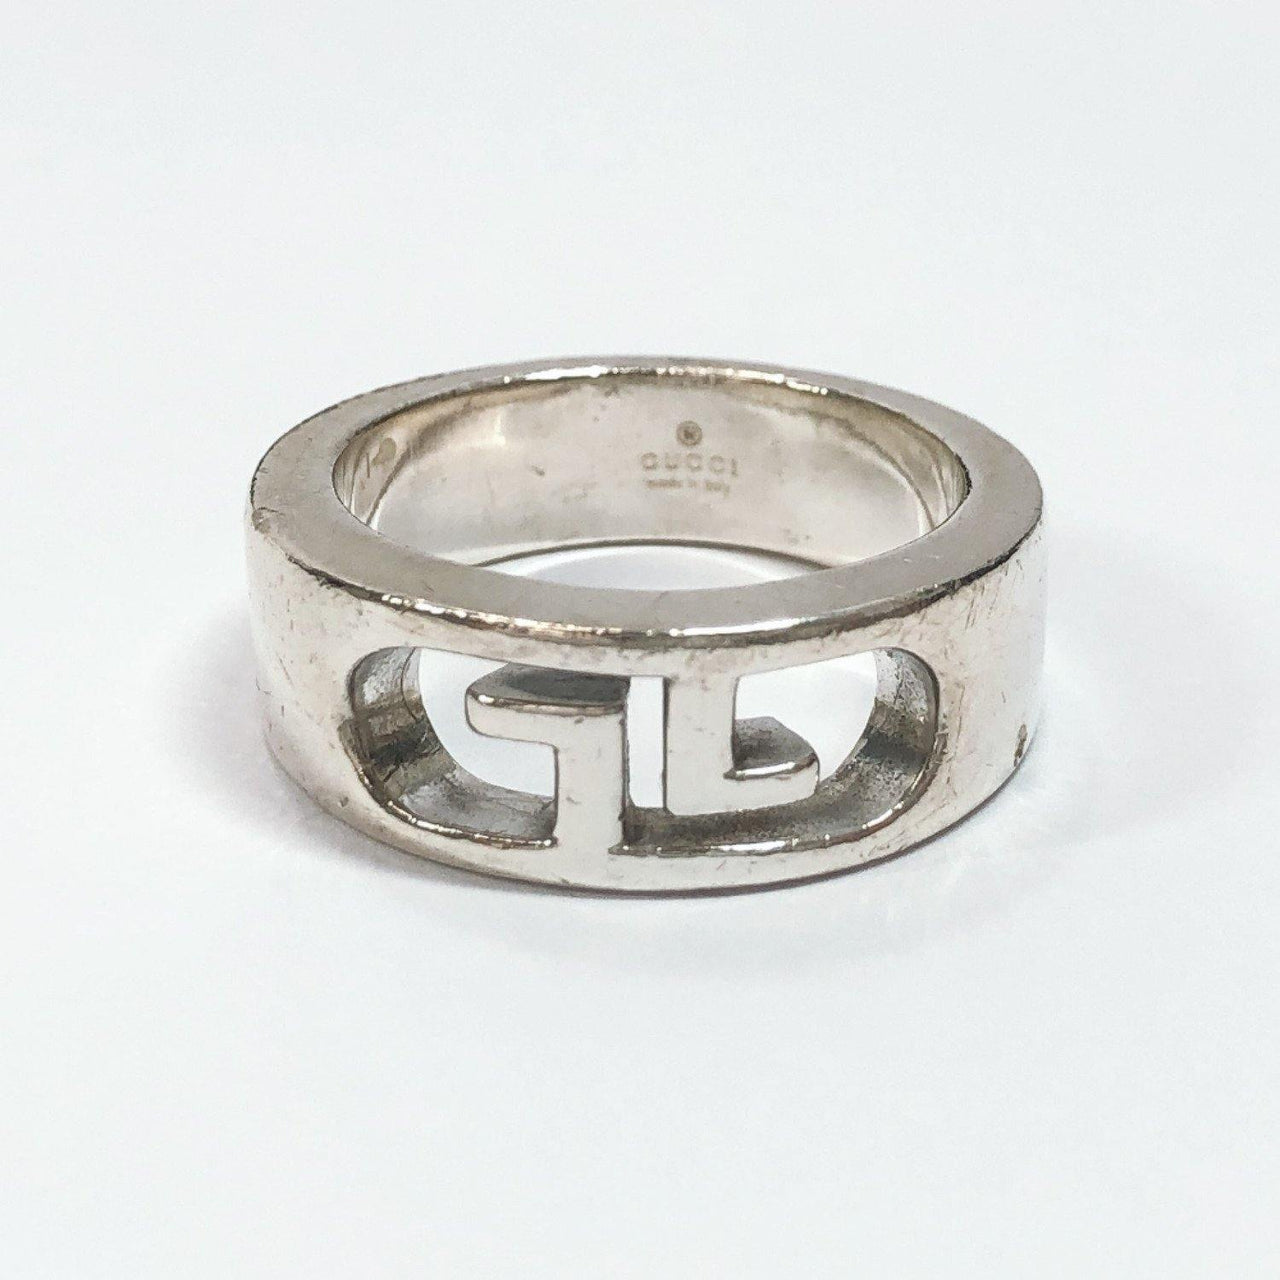 GUCCI Ring Double G Silver925/925 16 Silver mens Used - JP-BRANDS.com